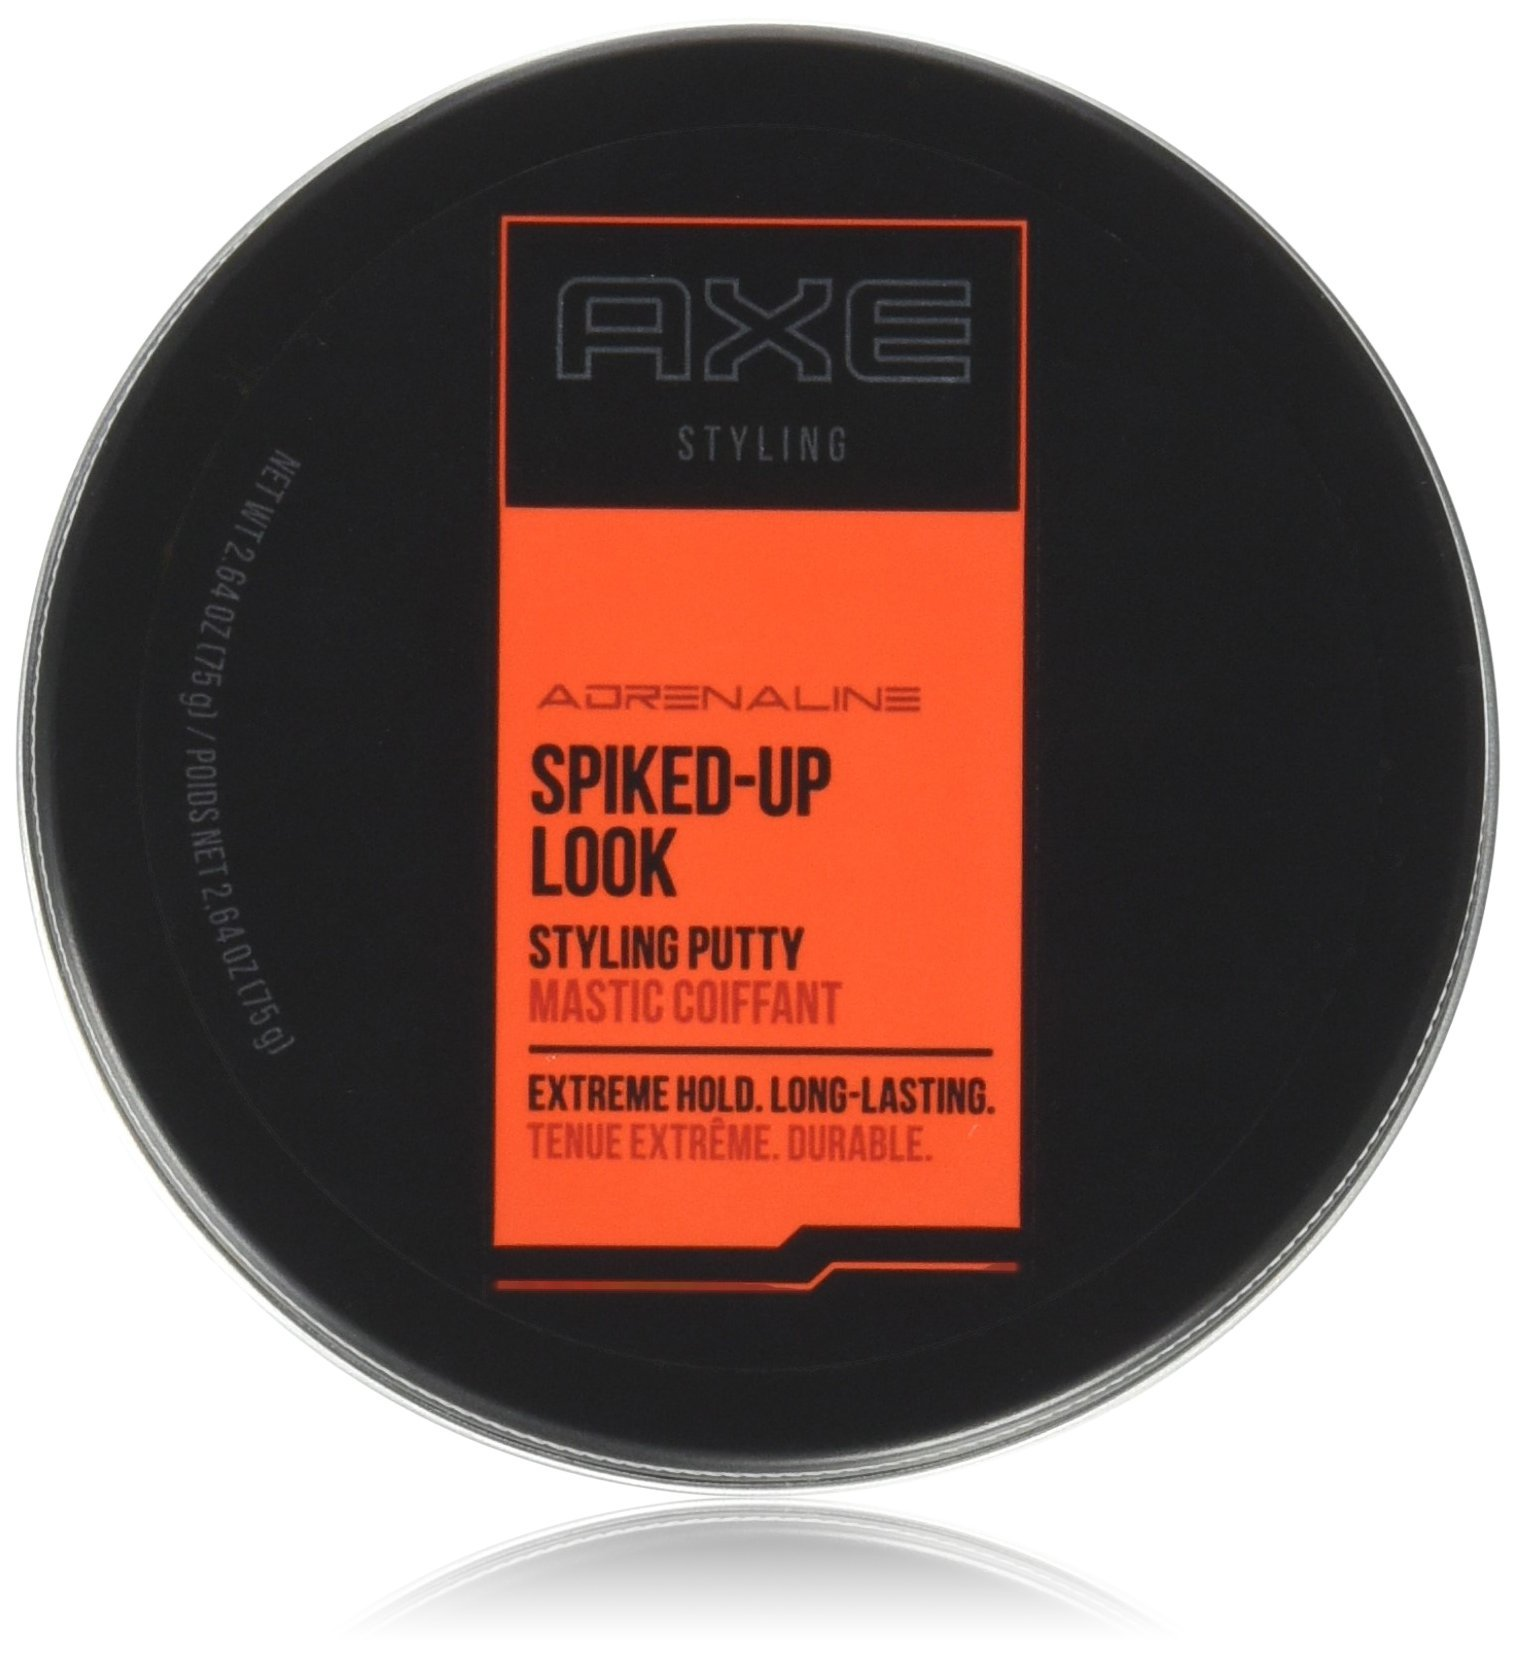 Axe Styling Spiked-Up Look Putty 2.64 Oz (Pack of 2) by AXE